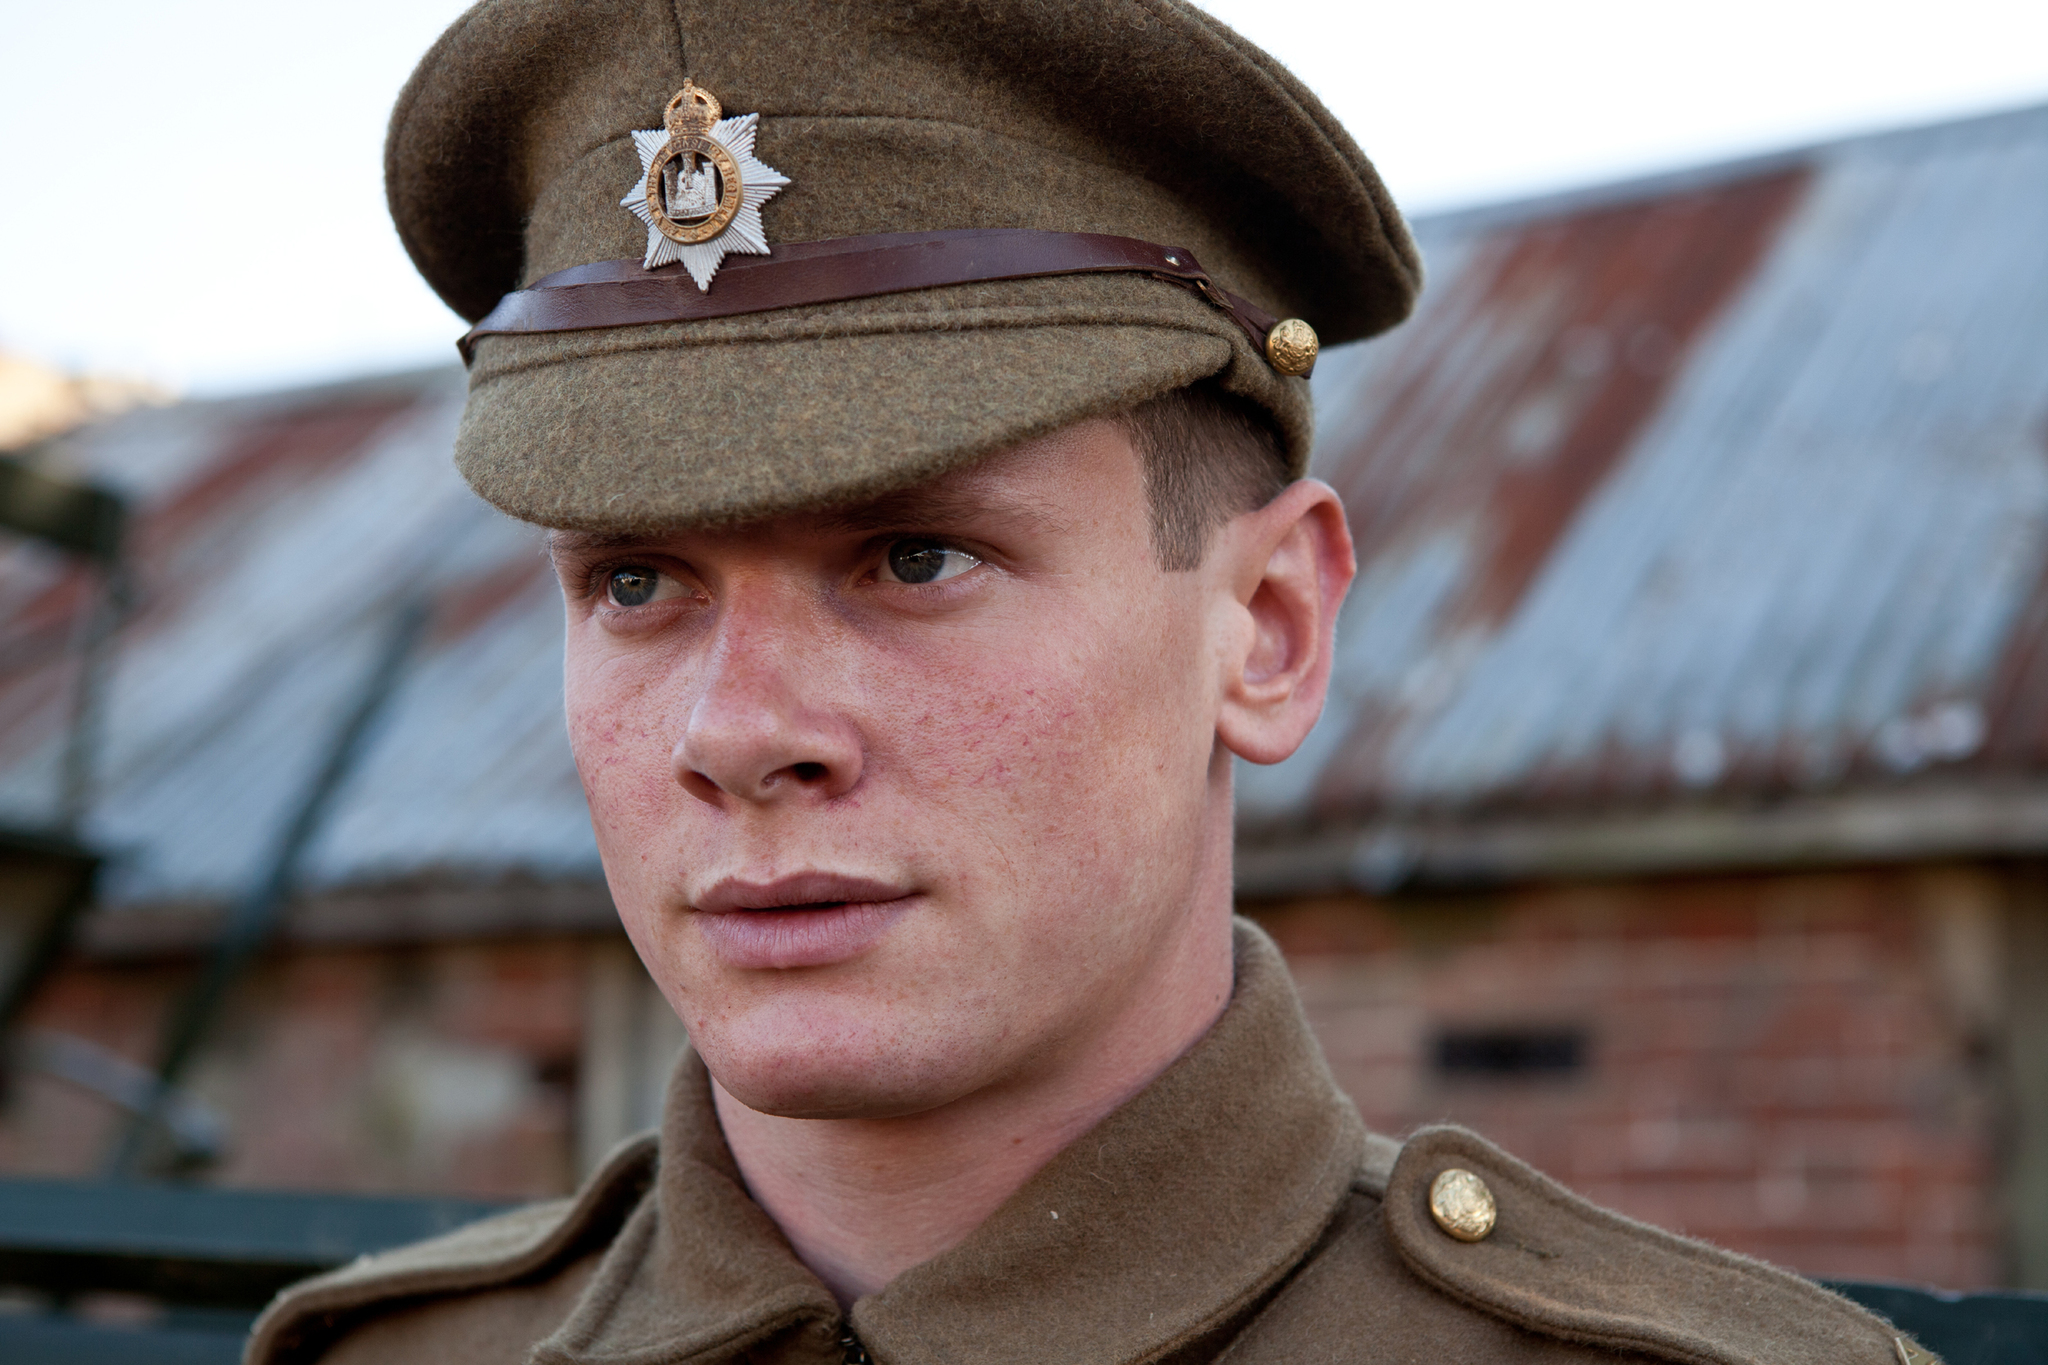 Still of Jack O'Connell in Private Peaceful (2012) photo #540473